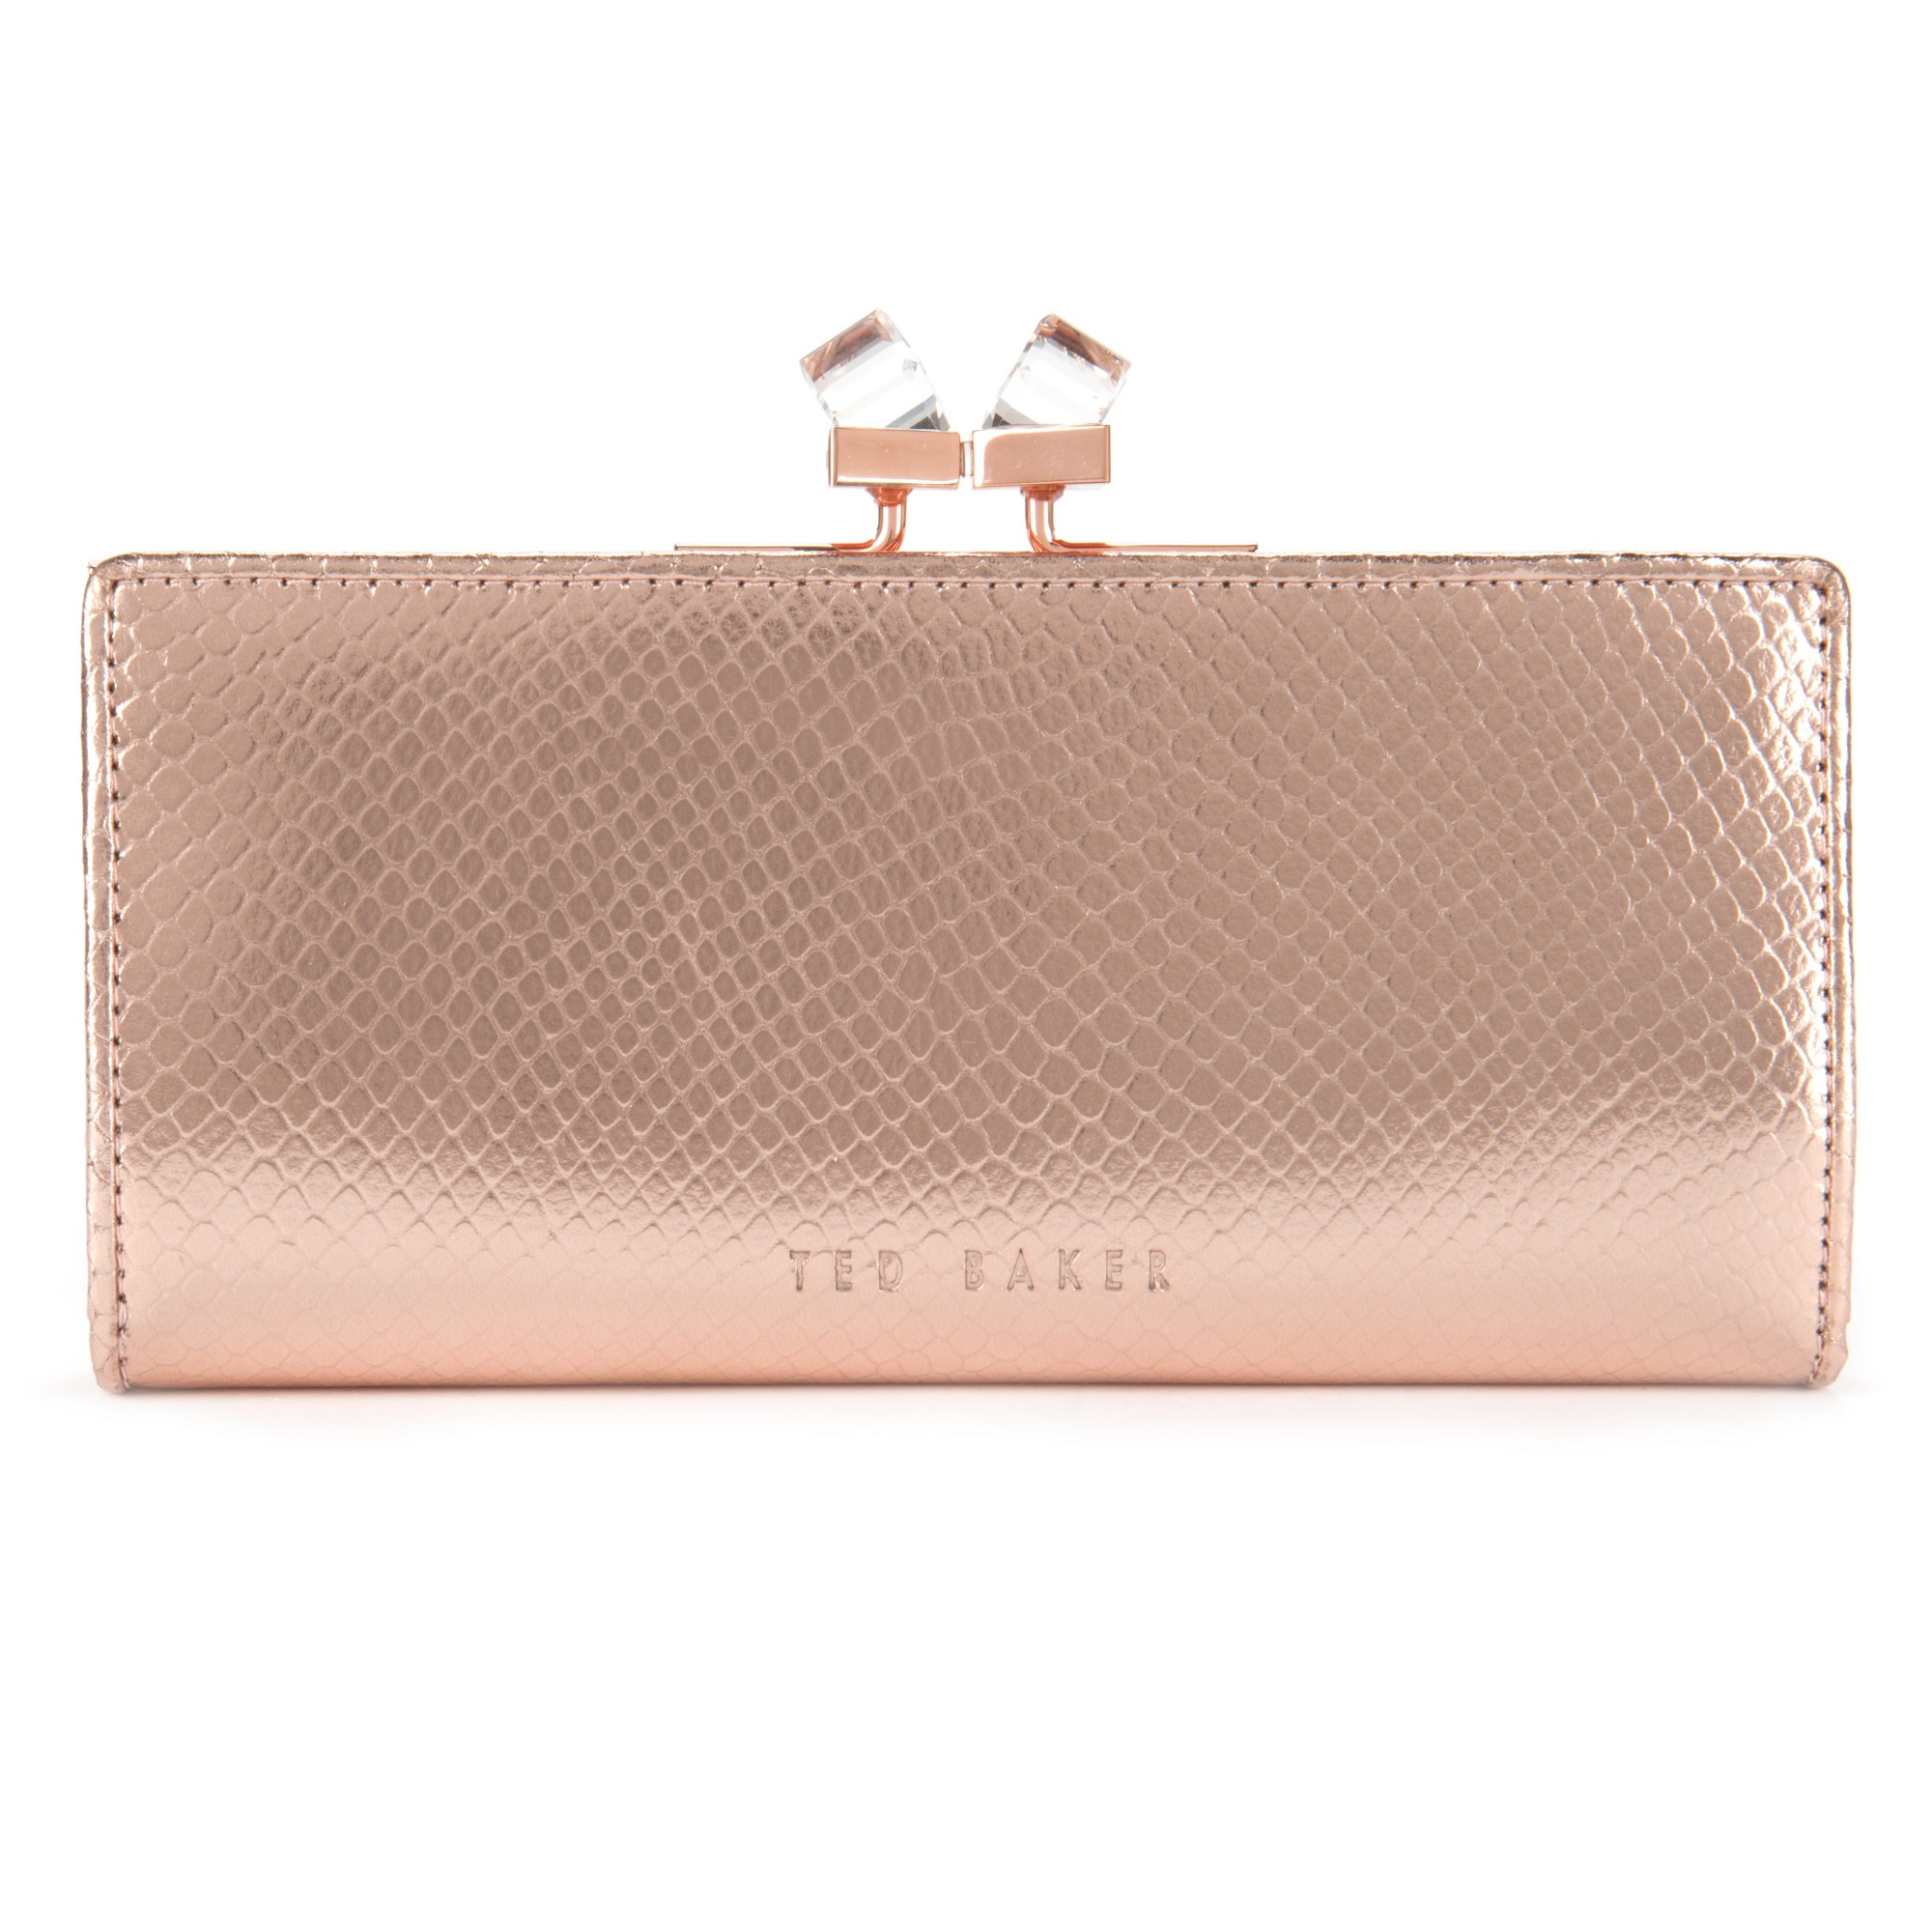 f57eb916afa93 Ted Baker Gold Purse Best Image Ccdbb. Ted Baker Auracon Large Bow Icon ...